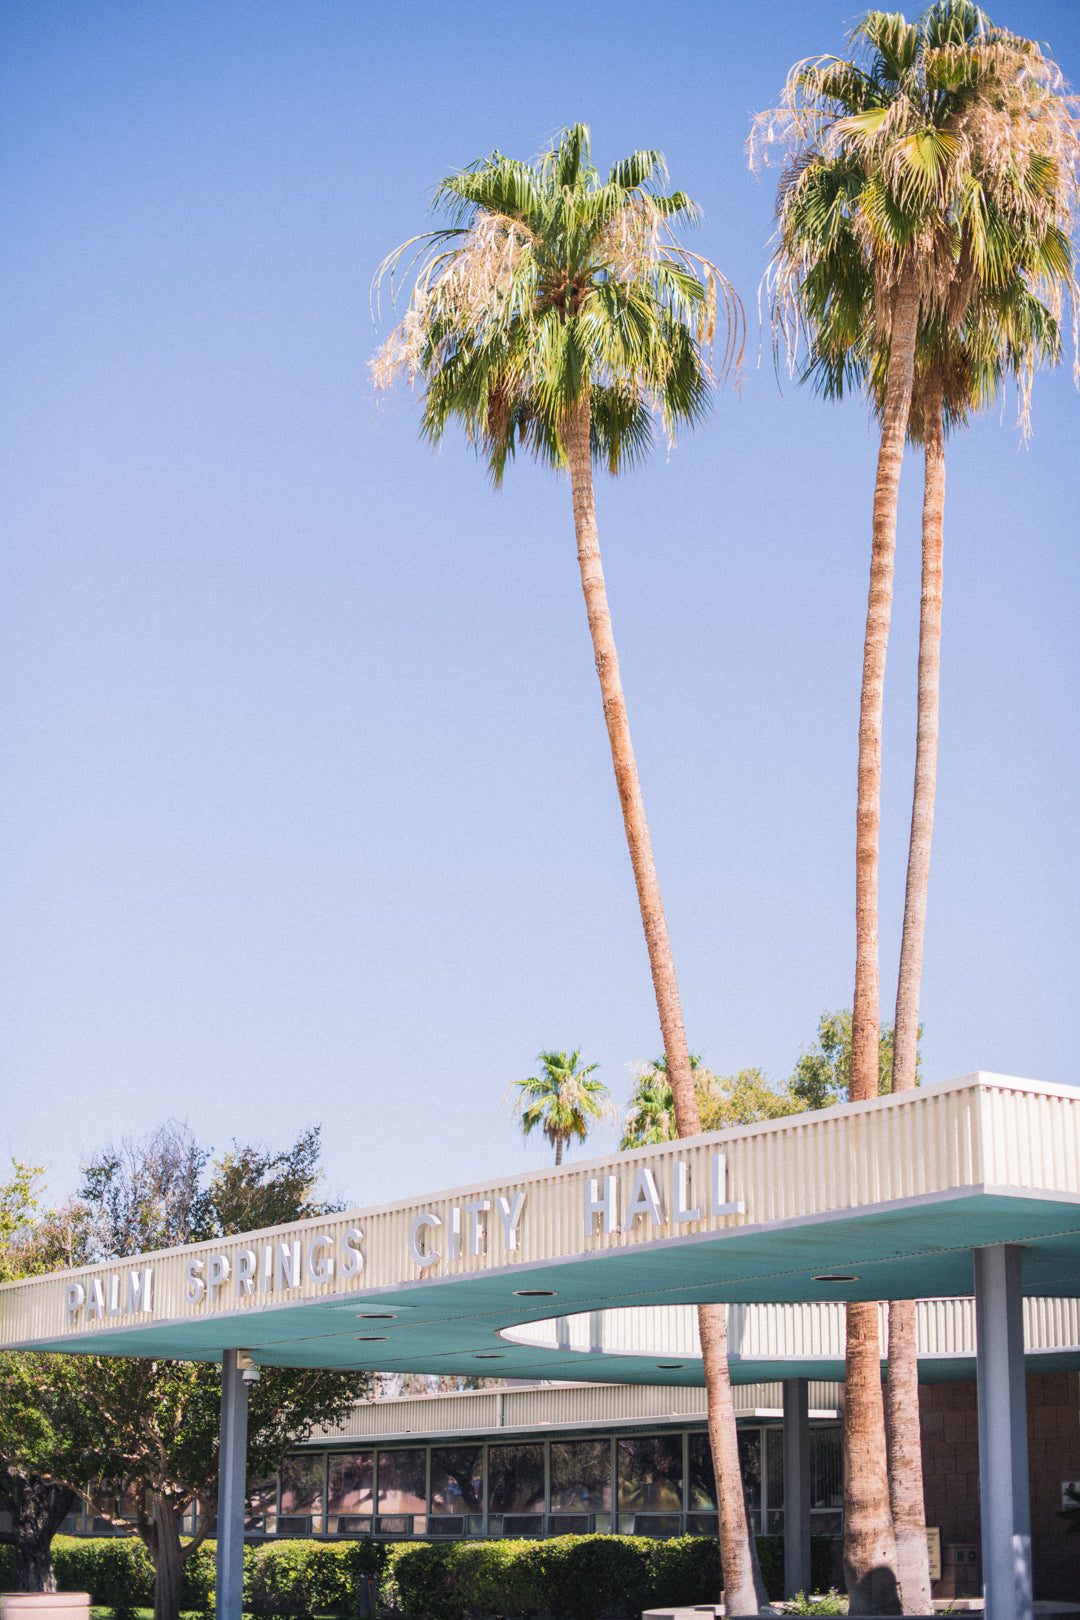 Palm Springs City Hall: One